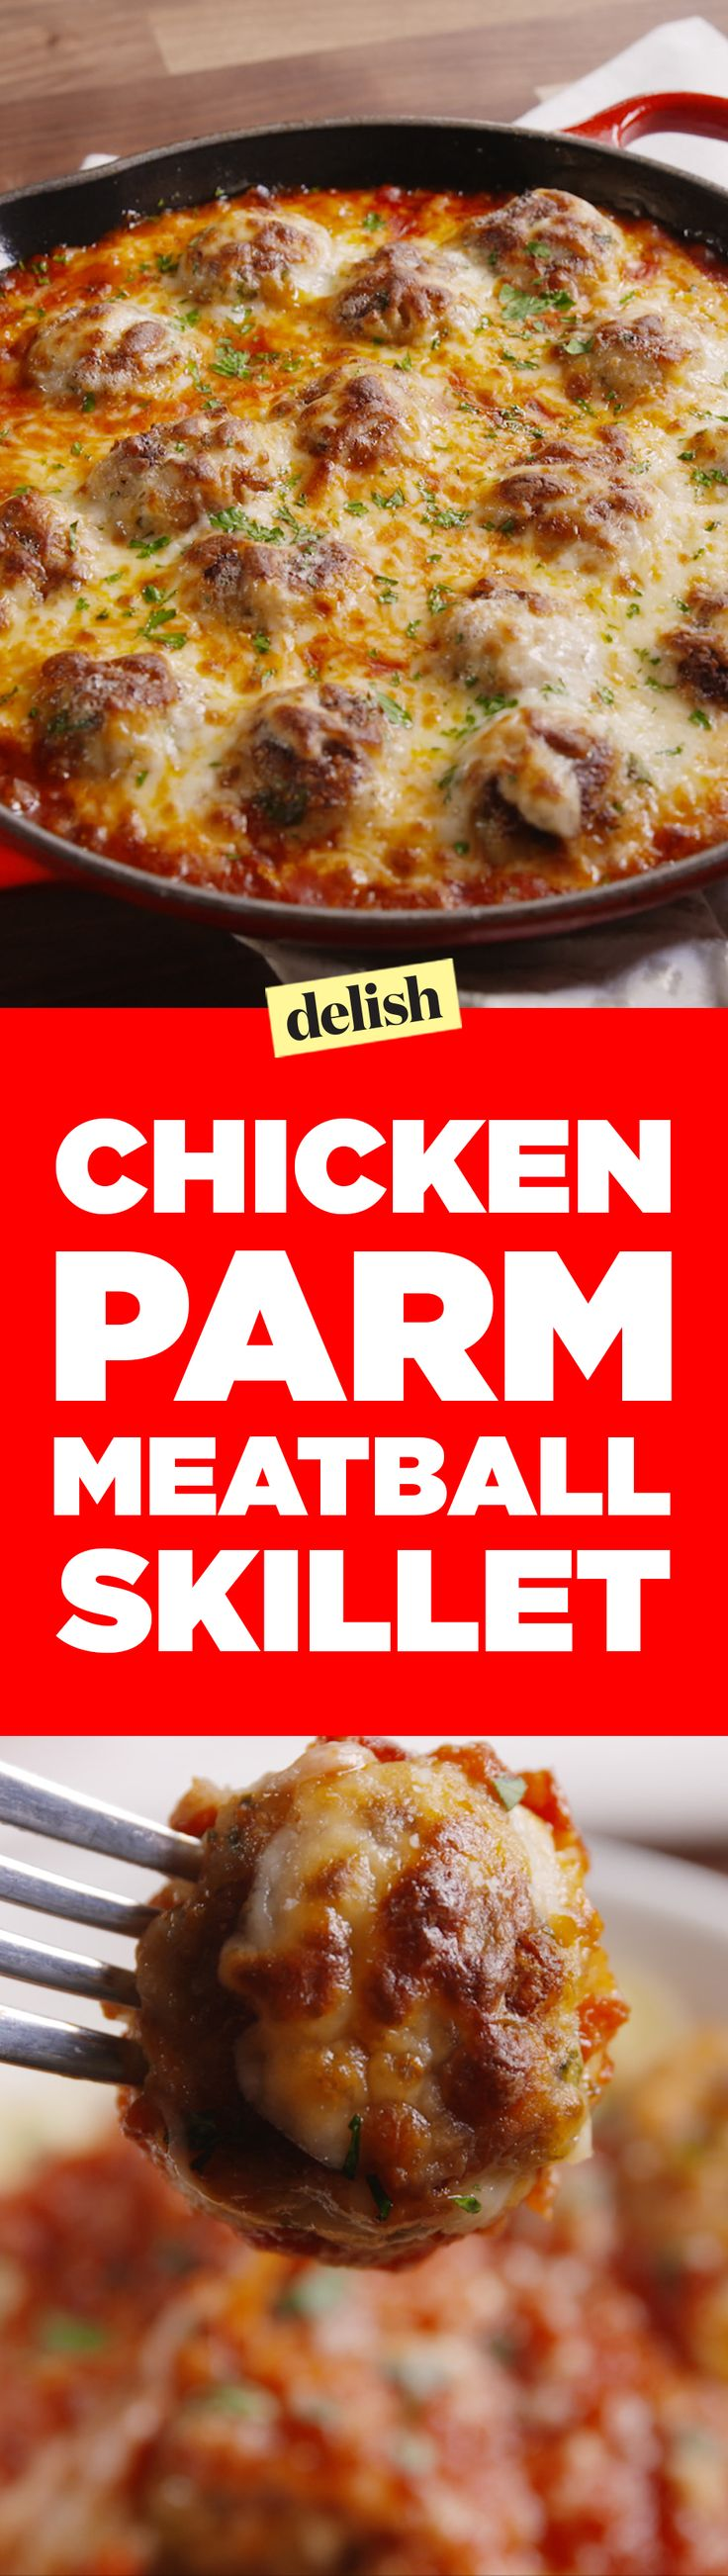 This chicken parm meatball Skillet is a combo of two perfect comfort foods. Get the recipe on Delish.com.